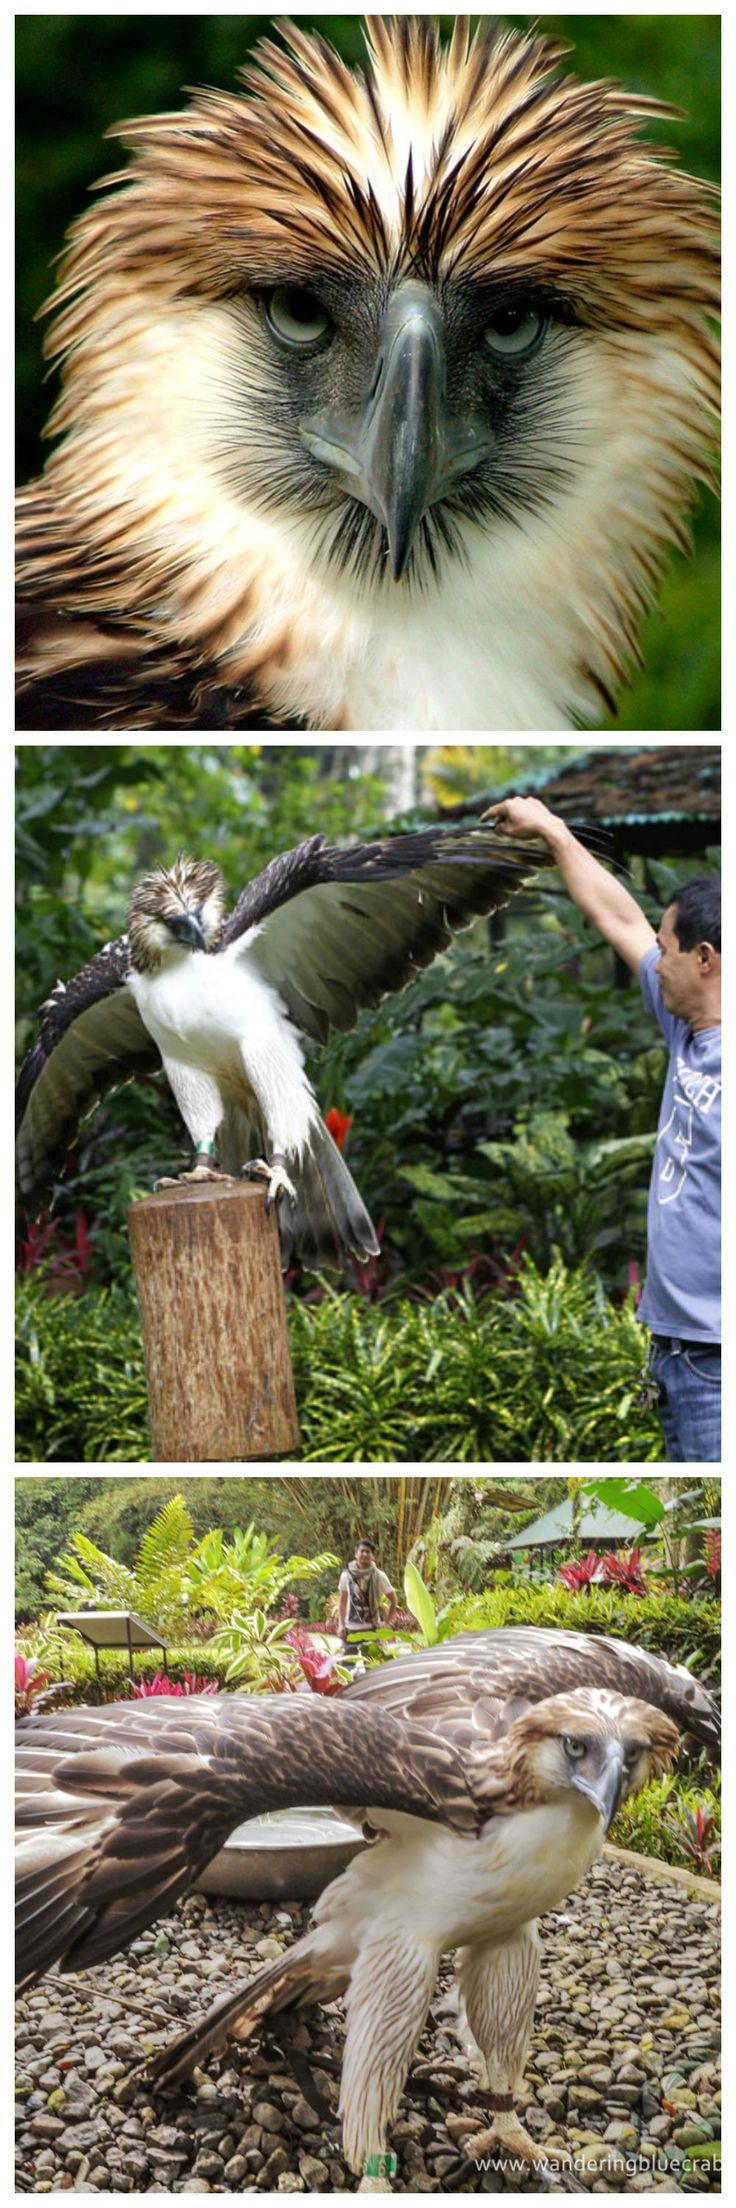 Philippine Eagle, aka monkey-eating eagle. That's one big, beautiful bird!